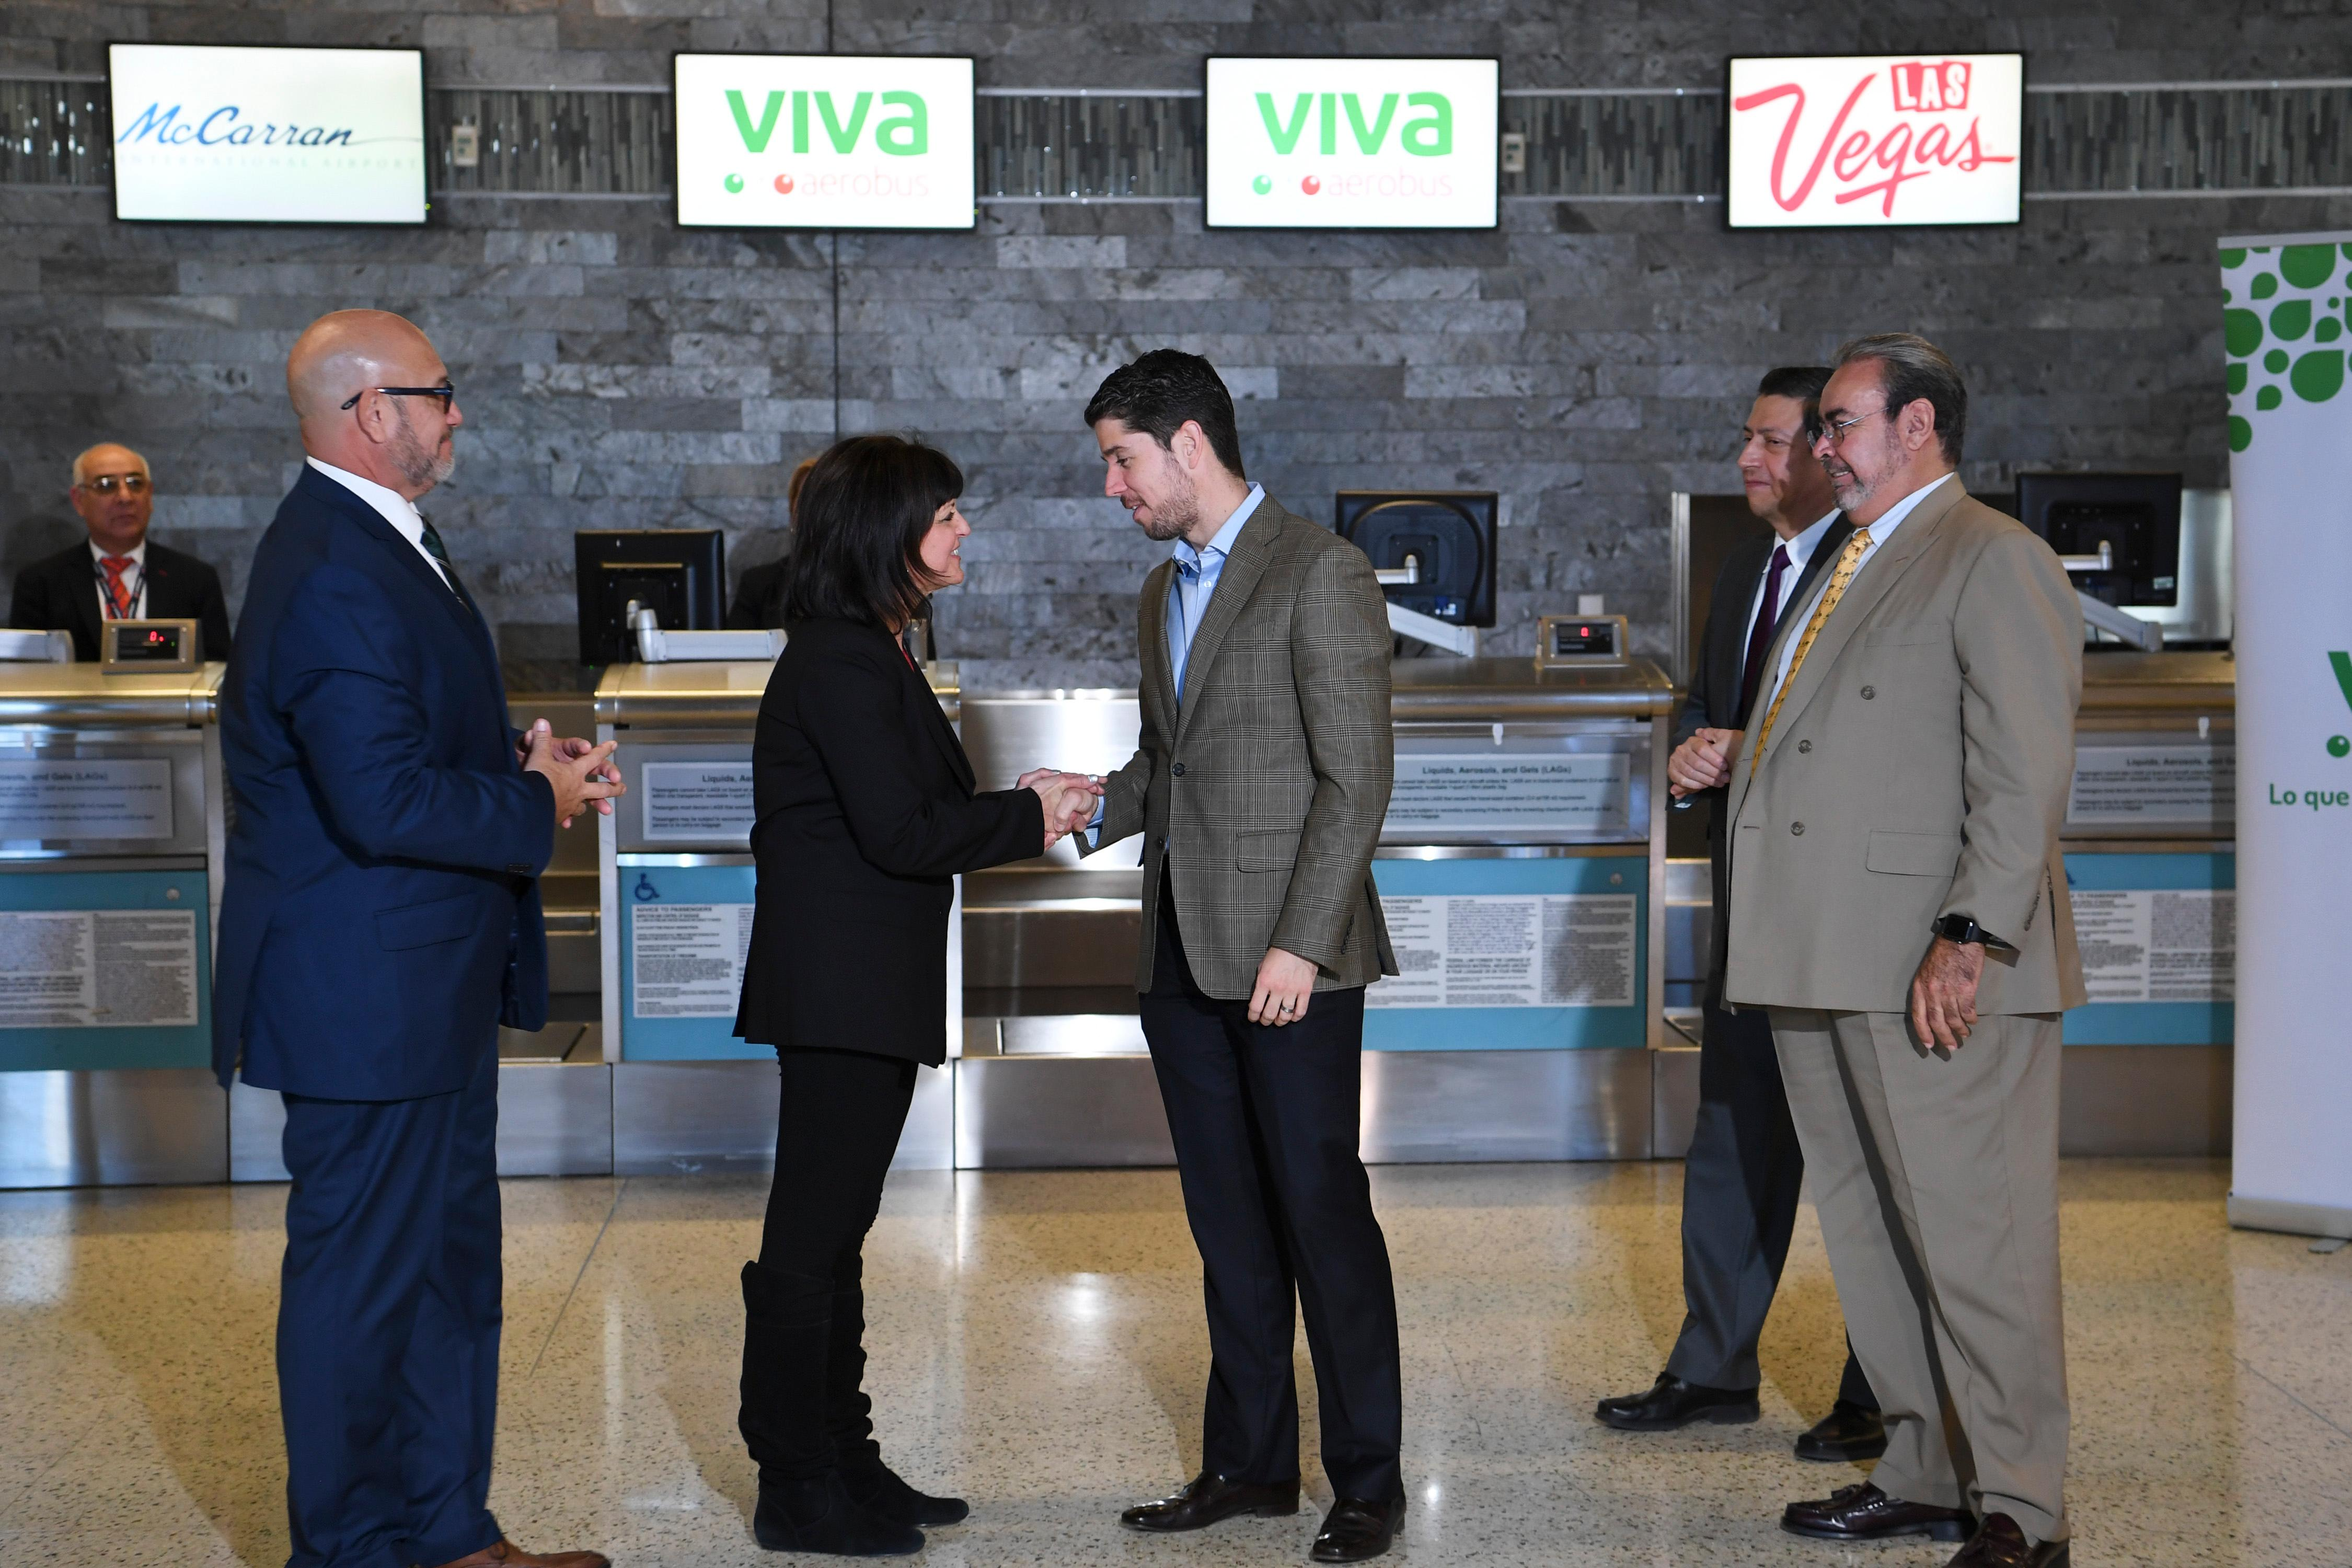 Clark County Aviation Director Rosemary Vassiliadis thanks General Director of Viva Aerobus Juan Carlos Zuazua after a news conference at McCarran International Airport to announce new Viva Aerobus service between Las Vegas and Mexico City  Friday, December 15, 2017. CREDIT: Sam Morris/Las Vegas News Bureau